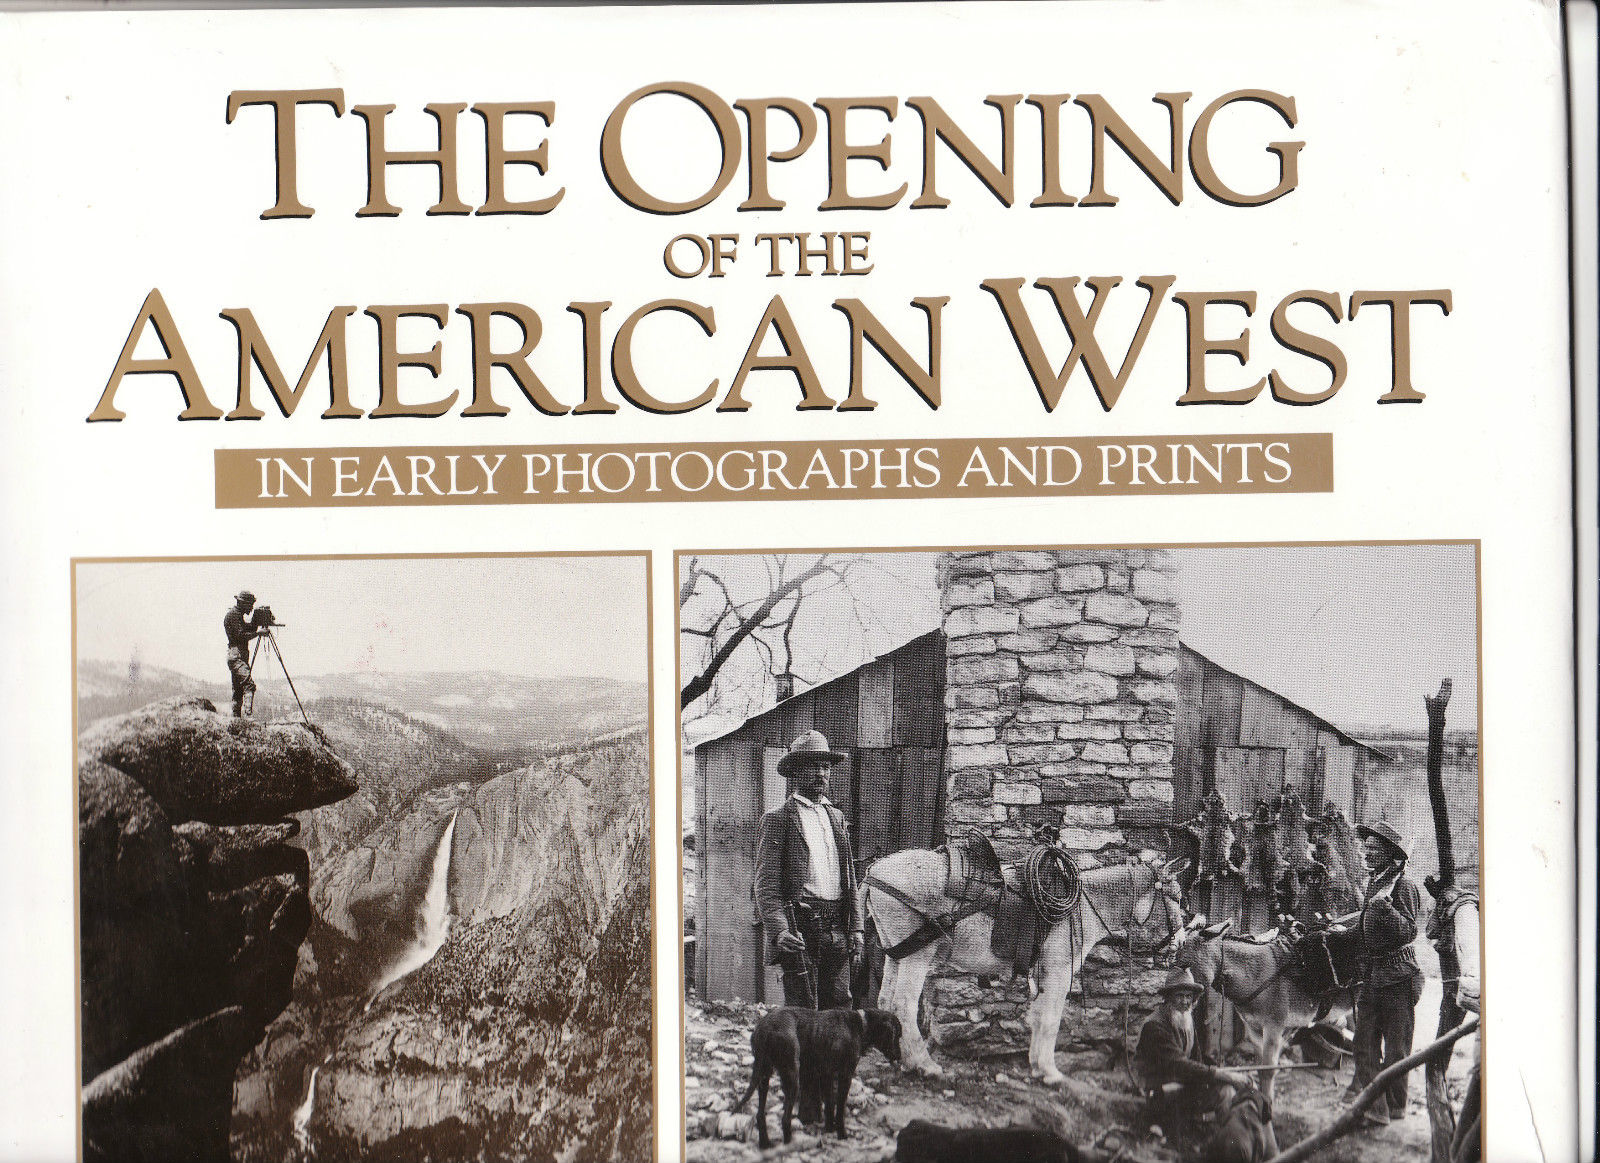 The Opening of the American West